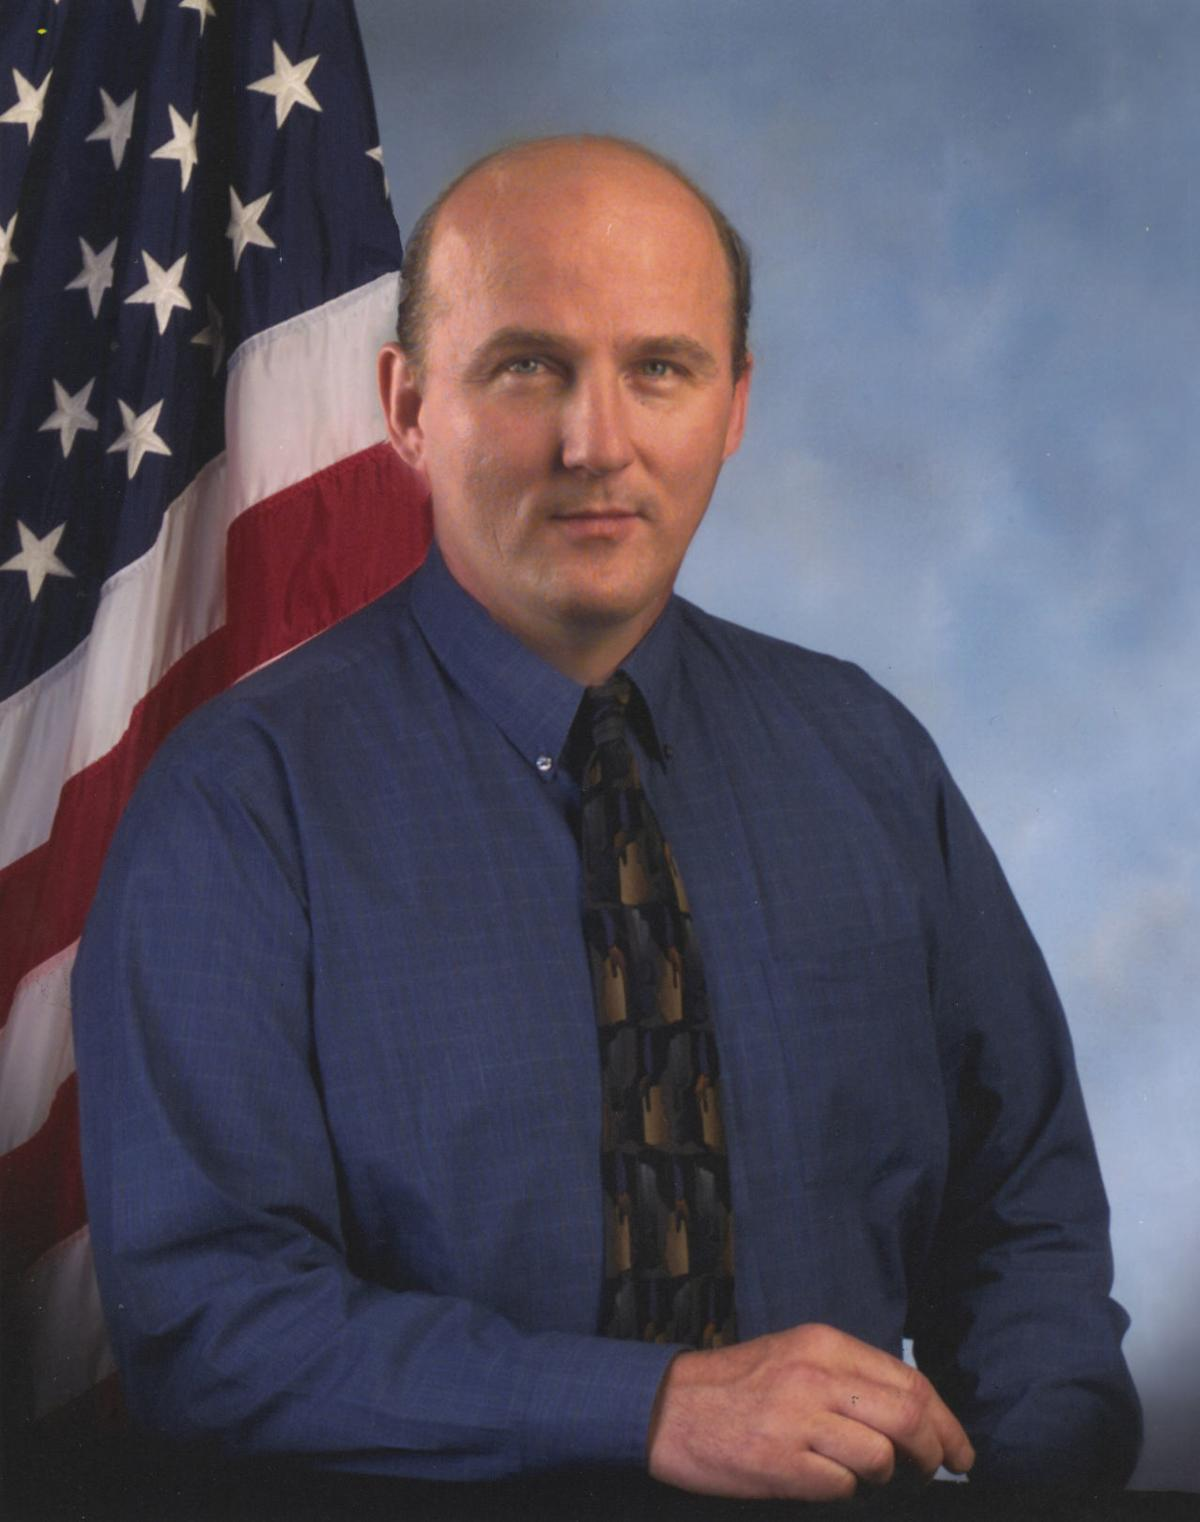 Gene O'Donnell